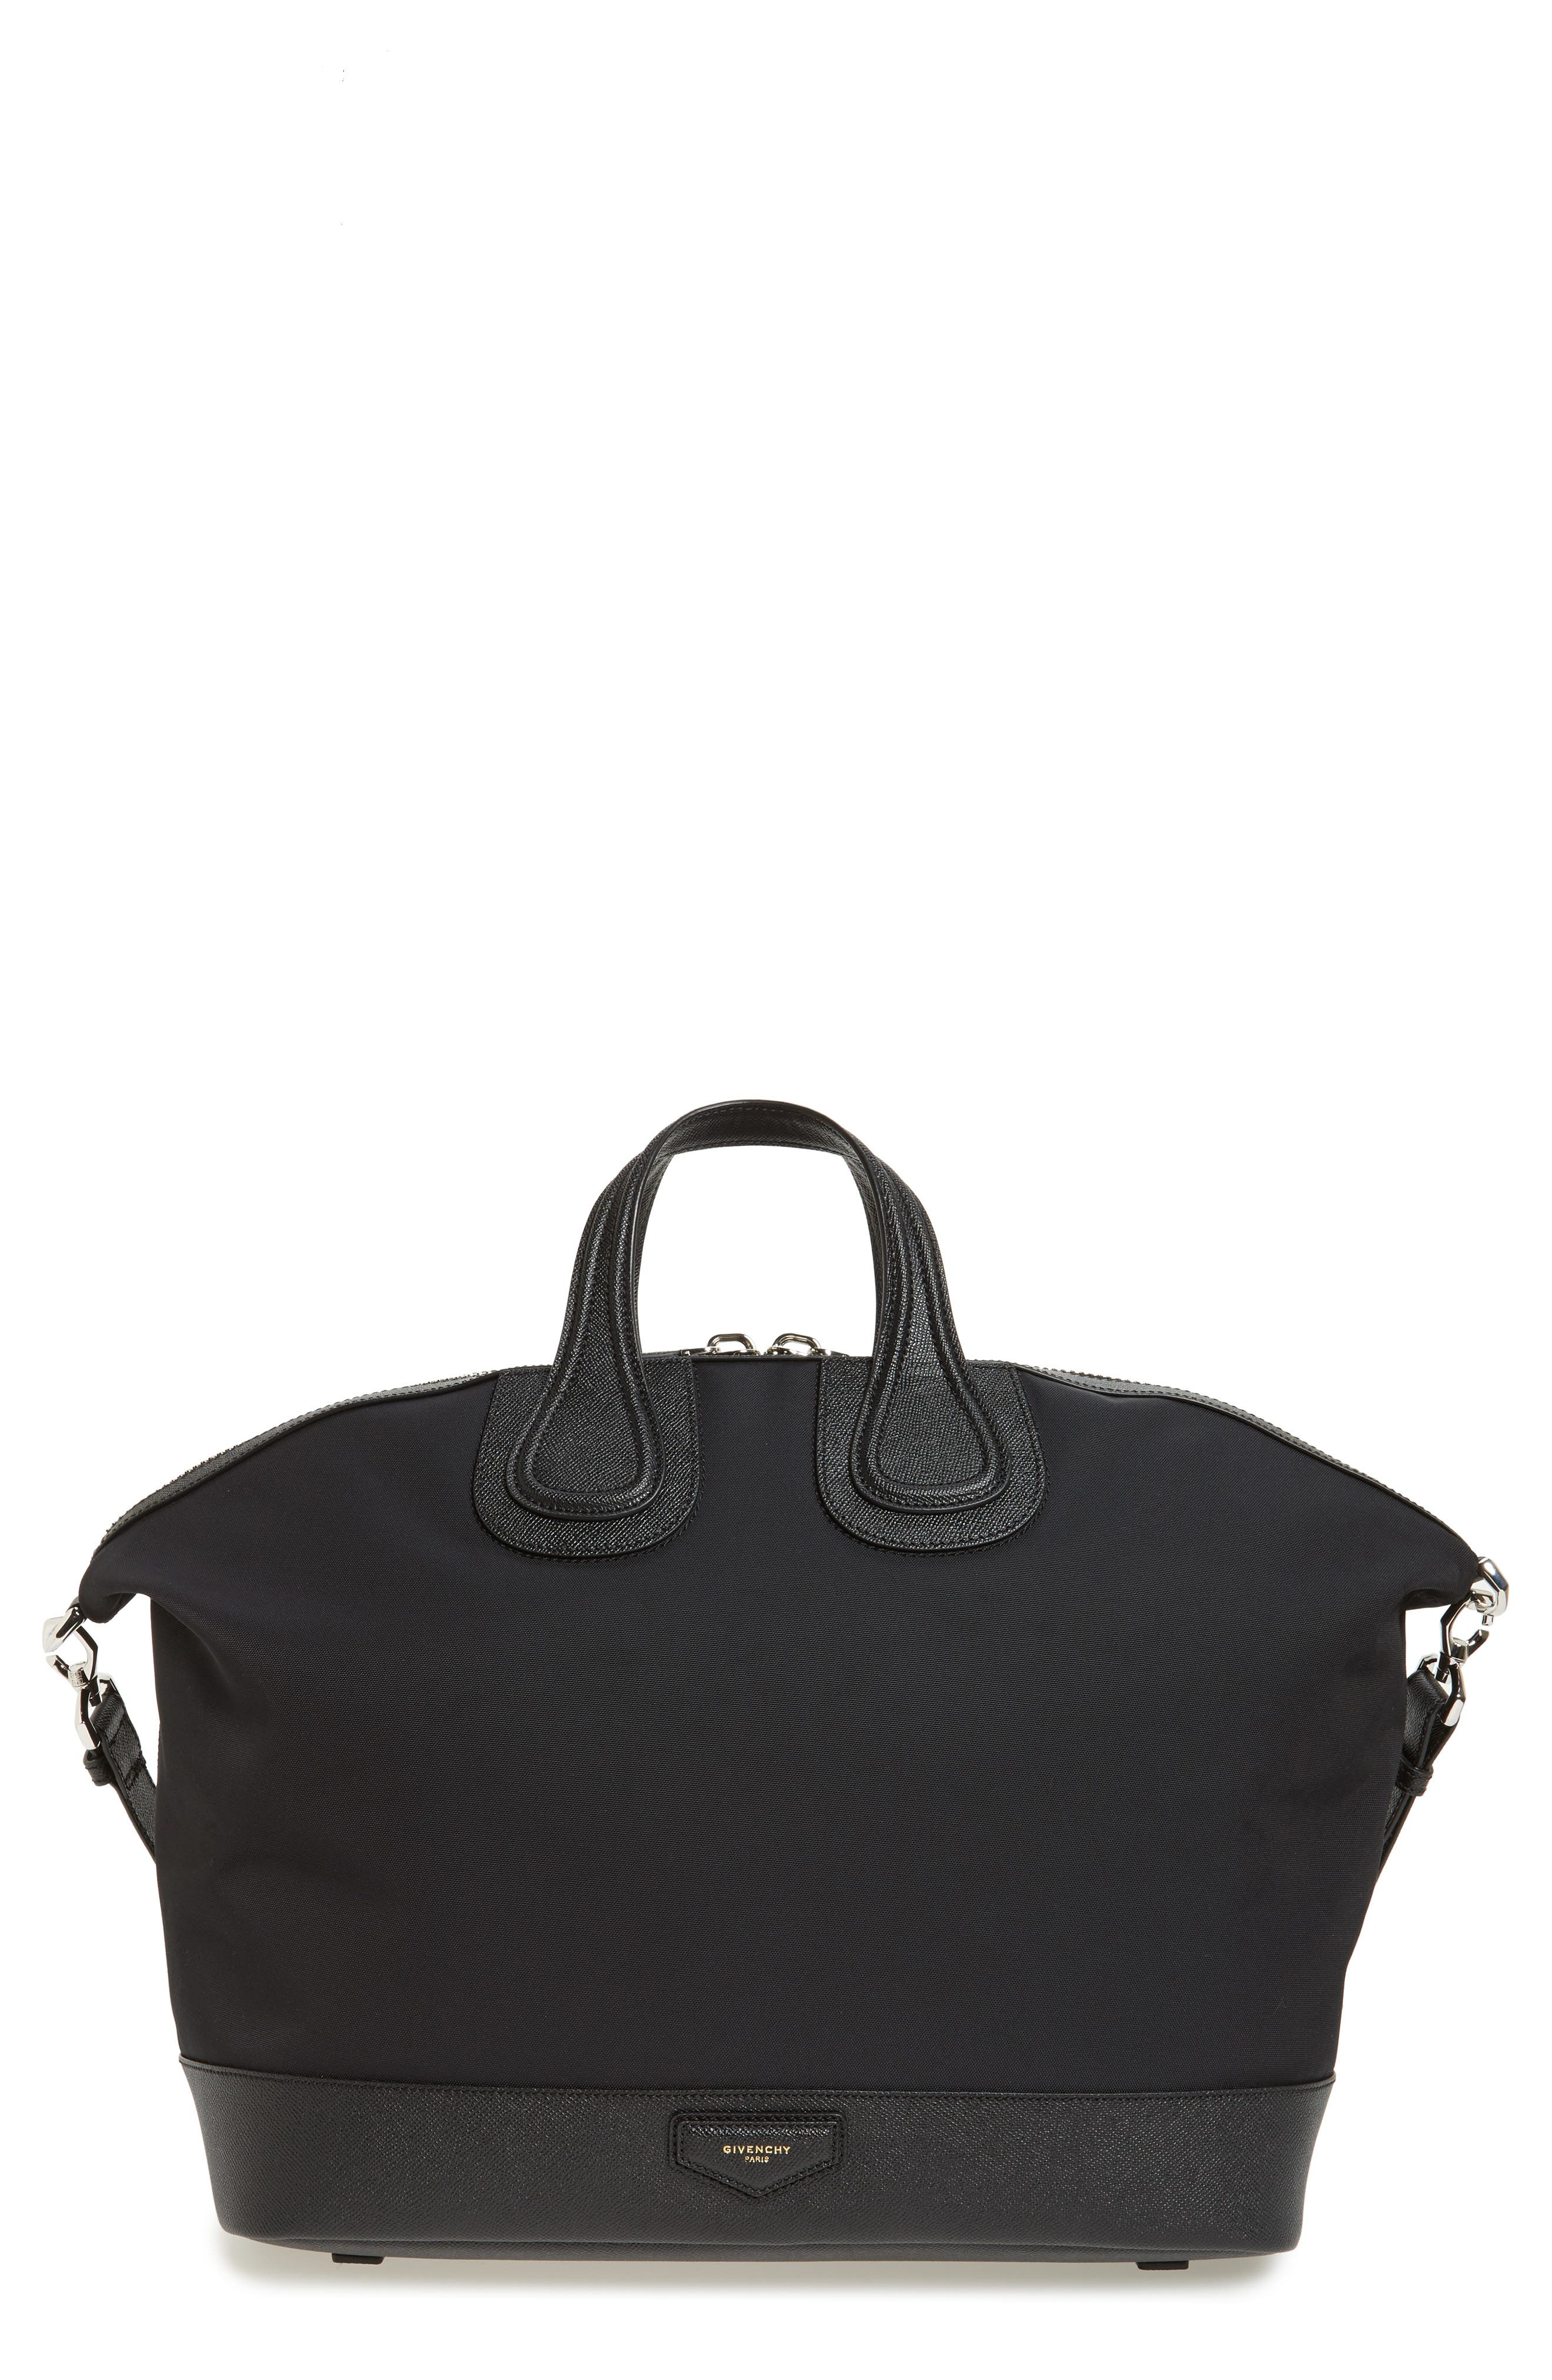 Givenchy Nightingale Canvas Bag